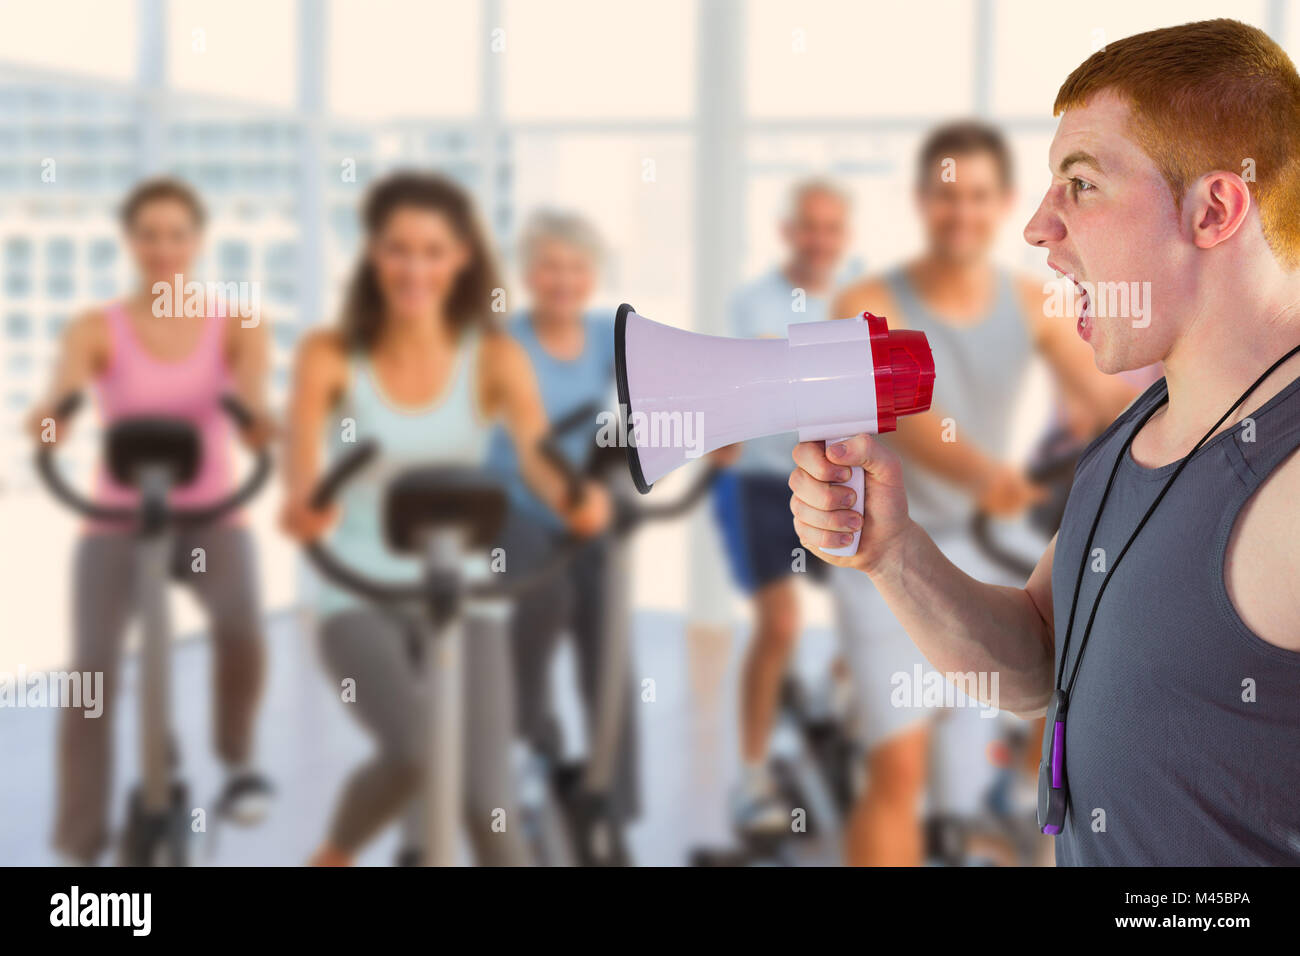 Composite image of angry personal trainer yelling through megaphone Stock Photo